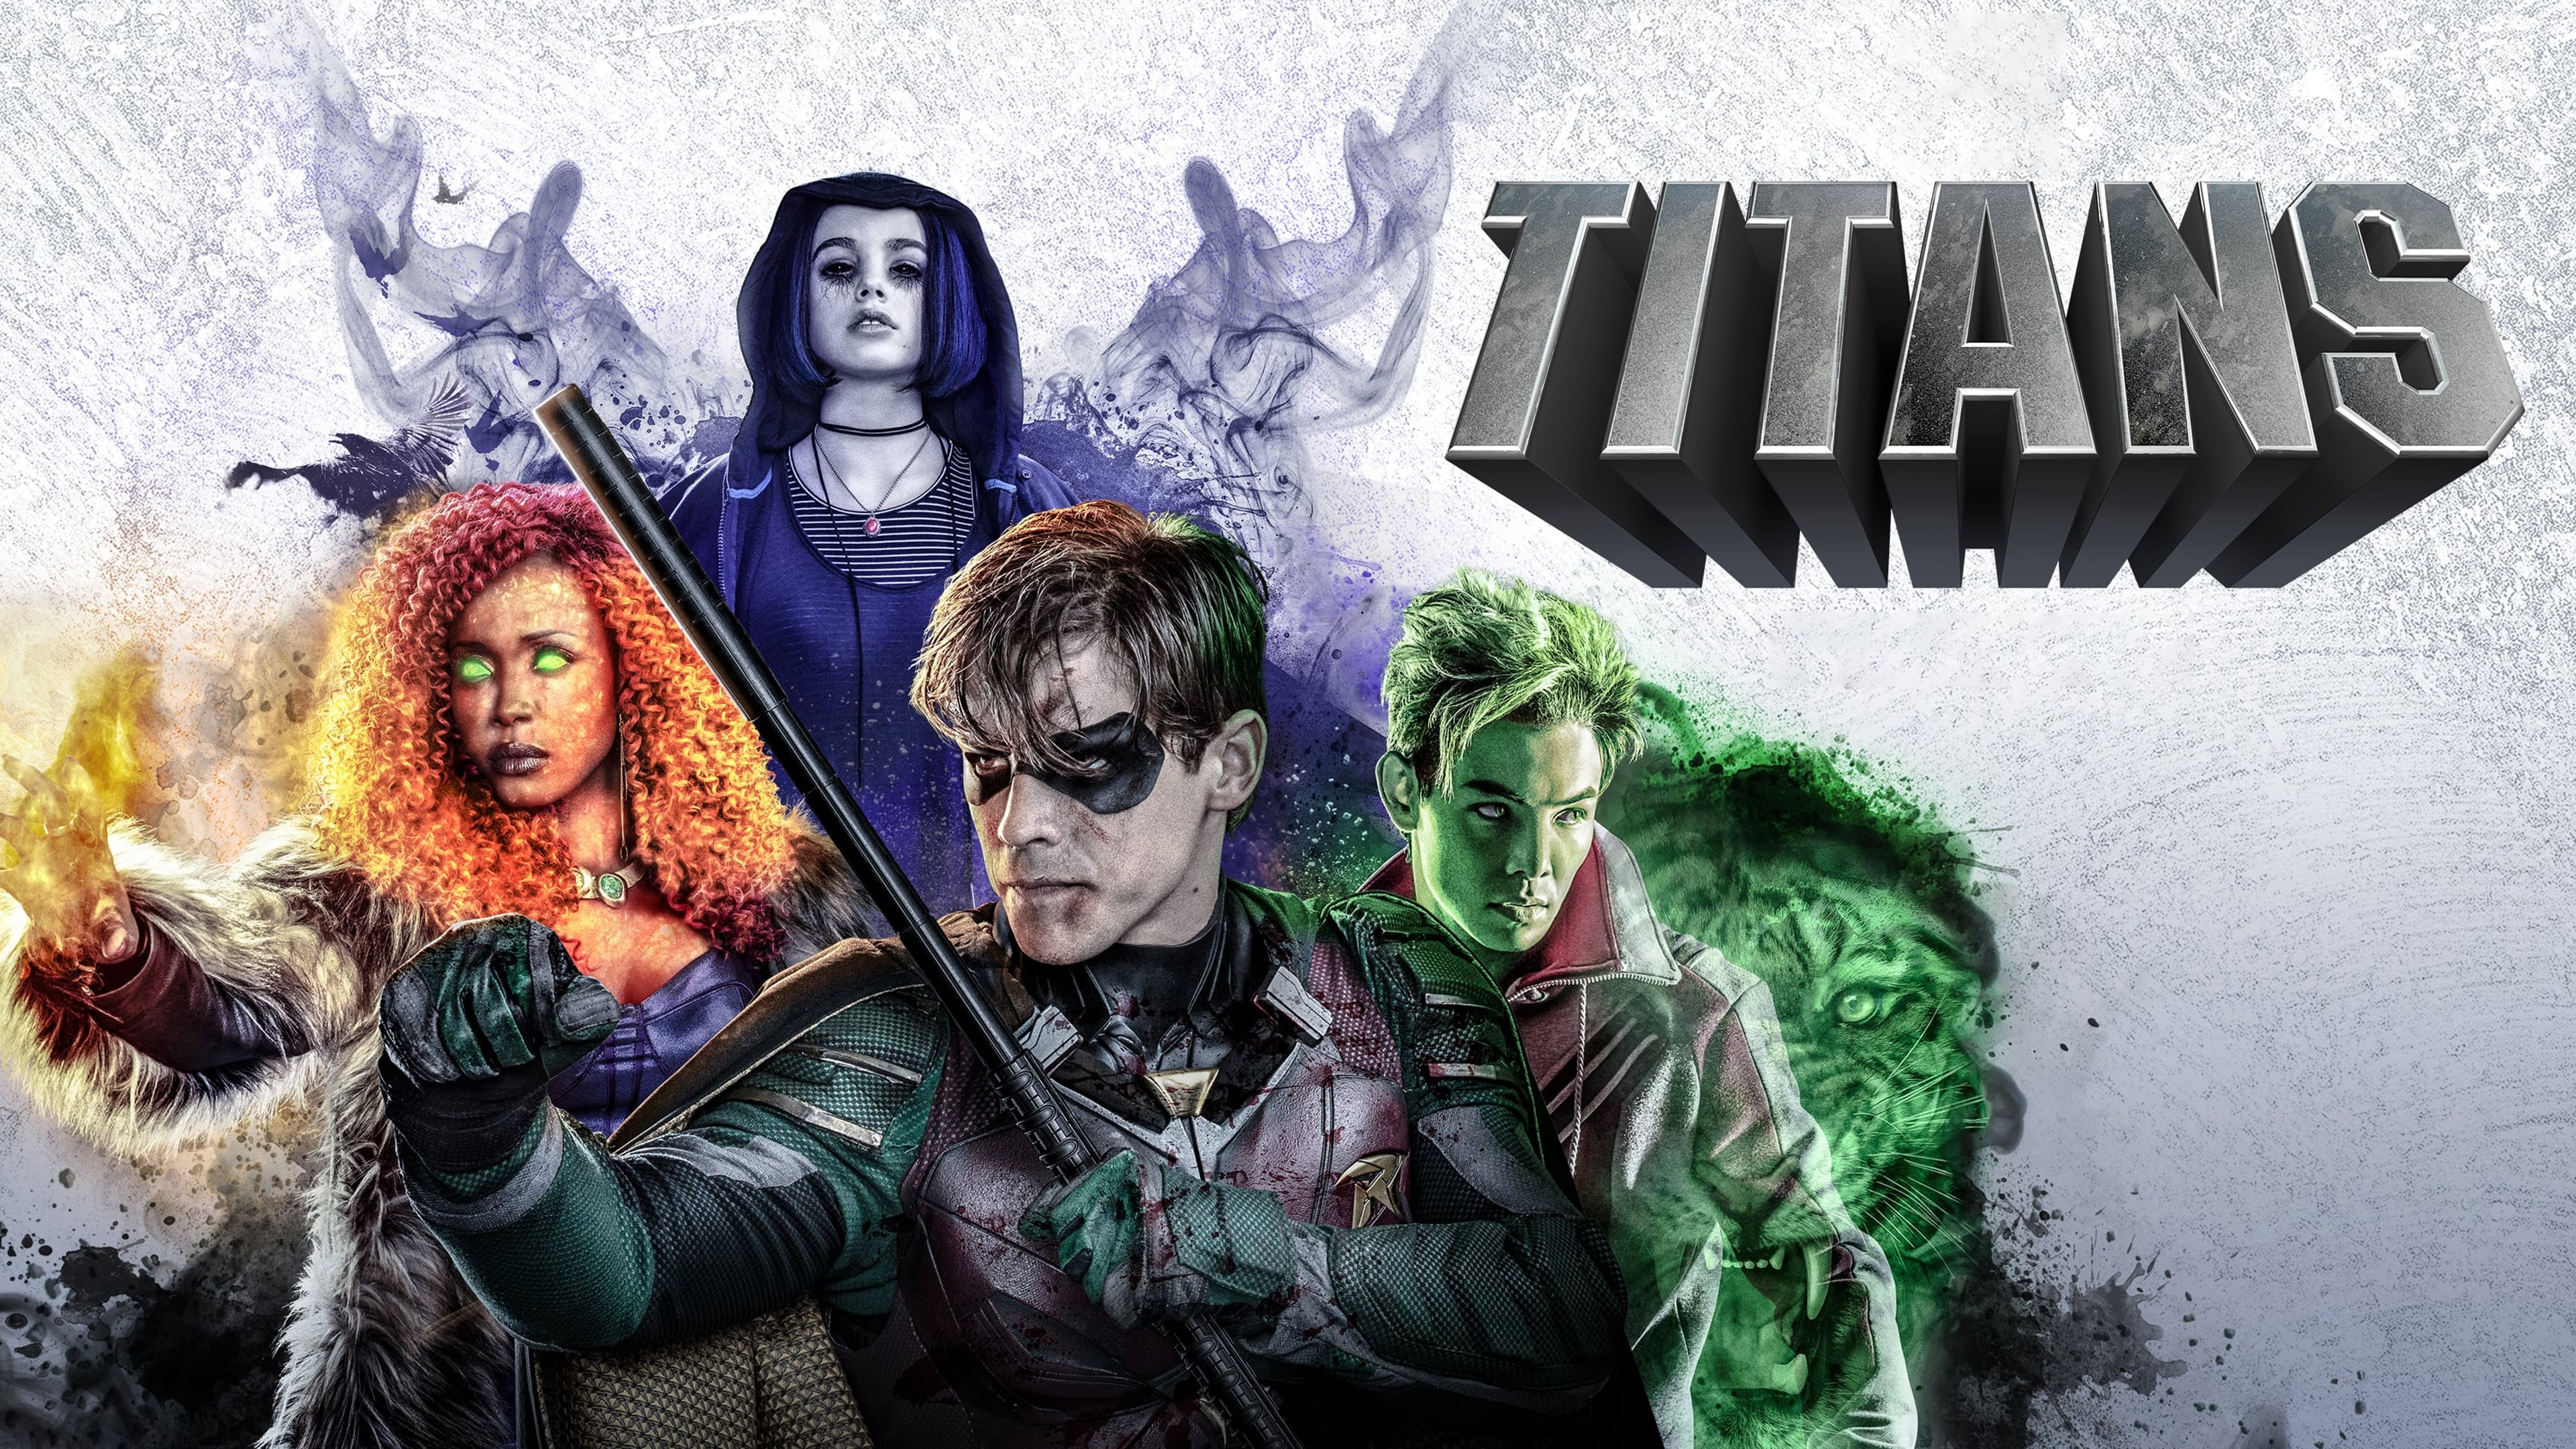 Casting news for third season Titans (2018)